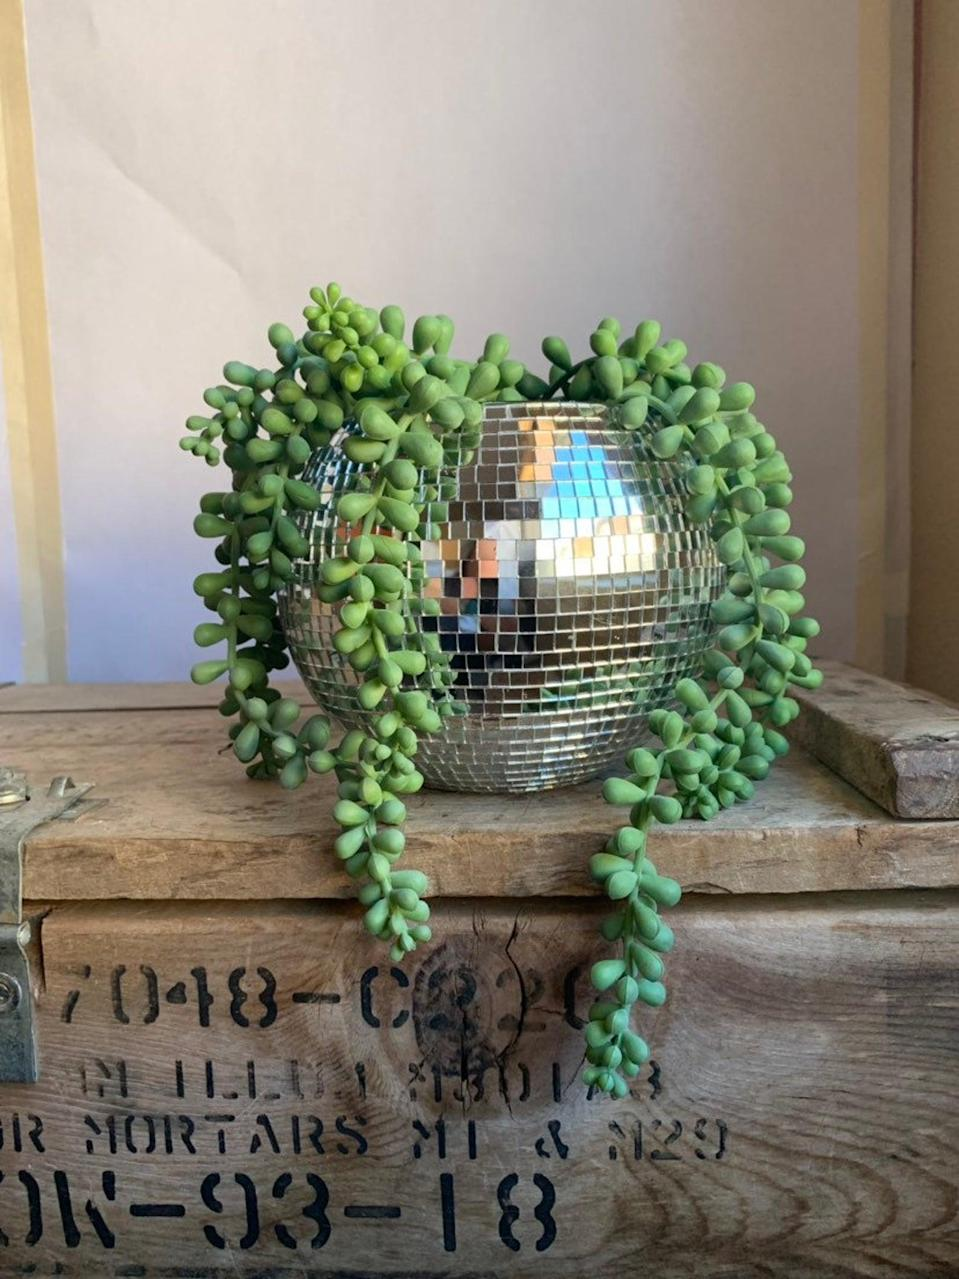 """<h2>Disco Ball Planter</h2><br>If you love your plant but feel like it just needs a little extra """"pizazz"""" then it's time to invest in a disco ball planter. <br><br><em>Shop</em> <strong><em><a href=""""https://fave.co/37Yrb8v"""" rel=""""nofollow noopener"""" target=""""_blank"""" data-ylk=""""slk:OriginalDiscoPlanter"""" class=""""link rapid-noclick-resp"""">OriginalDiscoPlanter</a></em></strong><br><br><br><br><strong>OriginalDiscoPlanter</strong> Disco Ball Planter, $, available at <a href=""""https://go.skimresources.com/?id=30283X879131&url=https%3A%2F%2Ffave.co%2F3o7FrBO"""" rel=""""nofollow noopener"""" target=""""_blank"""" data-ylk=""""slk:Etsy"""" class=""""link rapid-noclick-resp"""">Etsy</a>"""